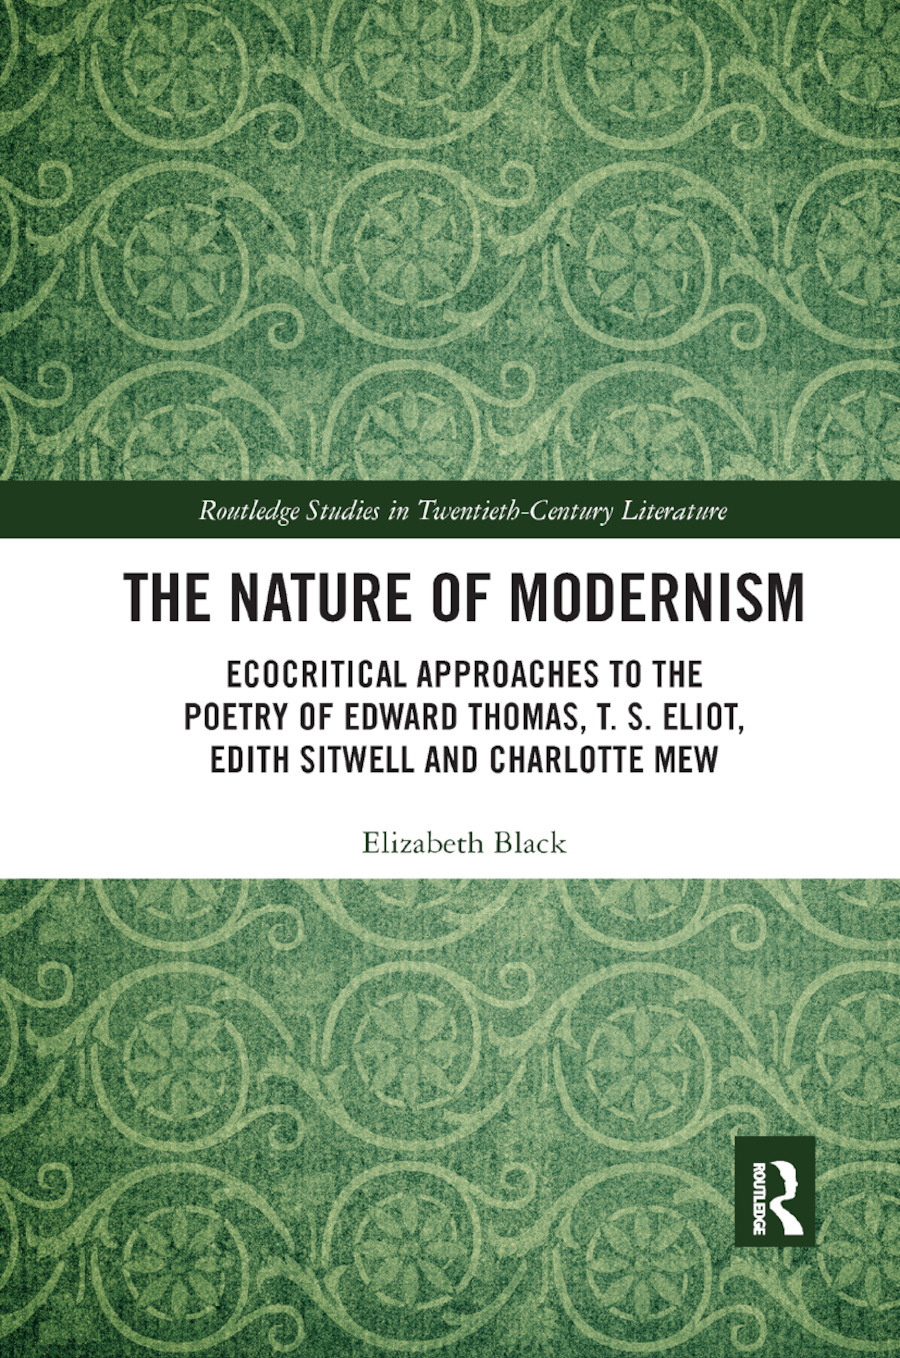 The Nature of Modernism: Ecocritical Approaches to the Poetry of Edward Thomas, T. S. Eliot, Edith Sitwell and Charlotte Mew, 1st Edition (Paperback) book cover